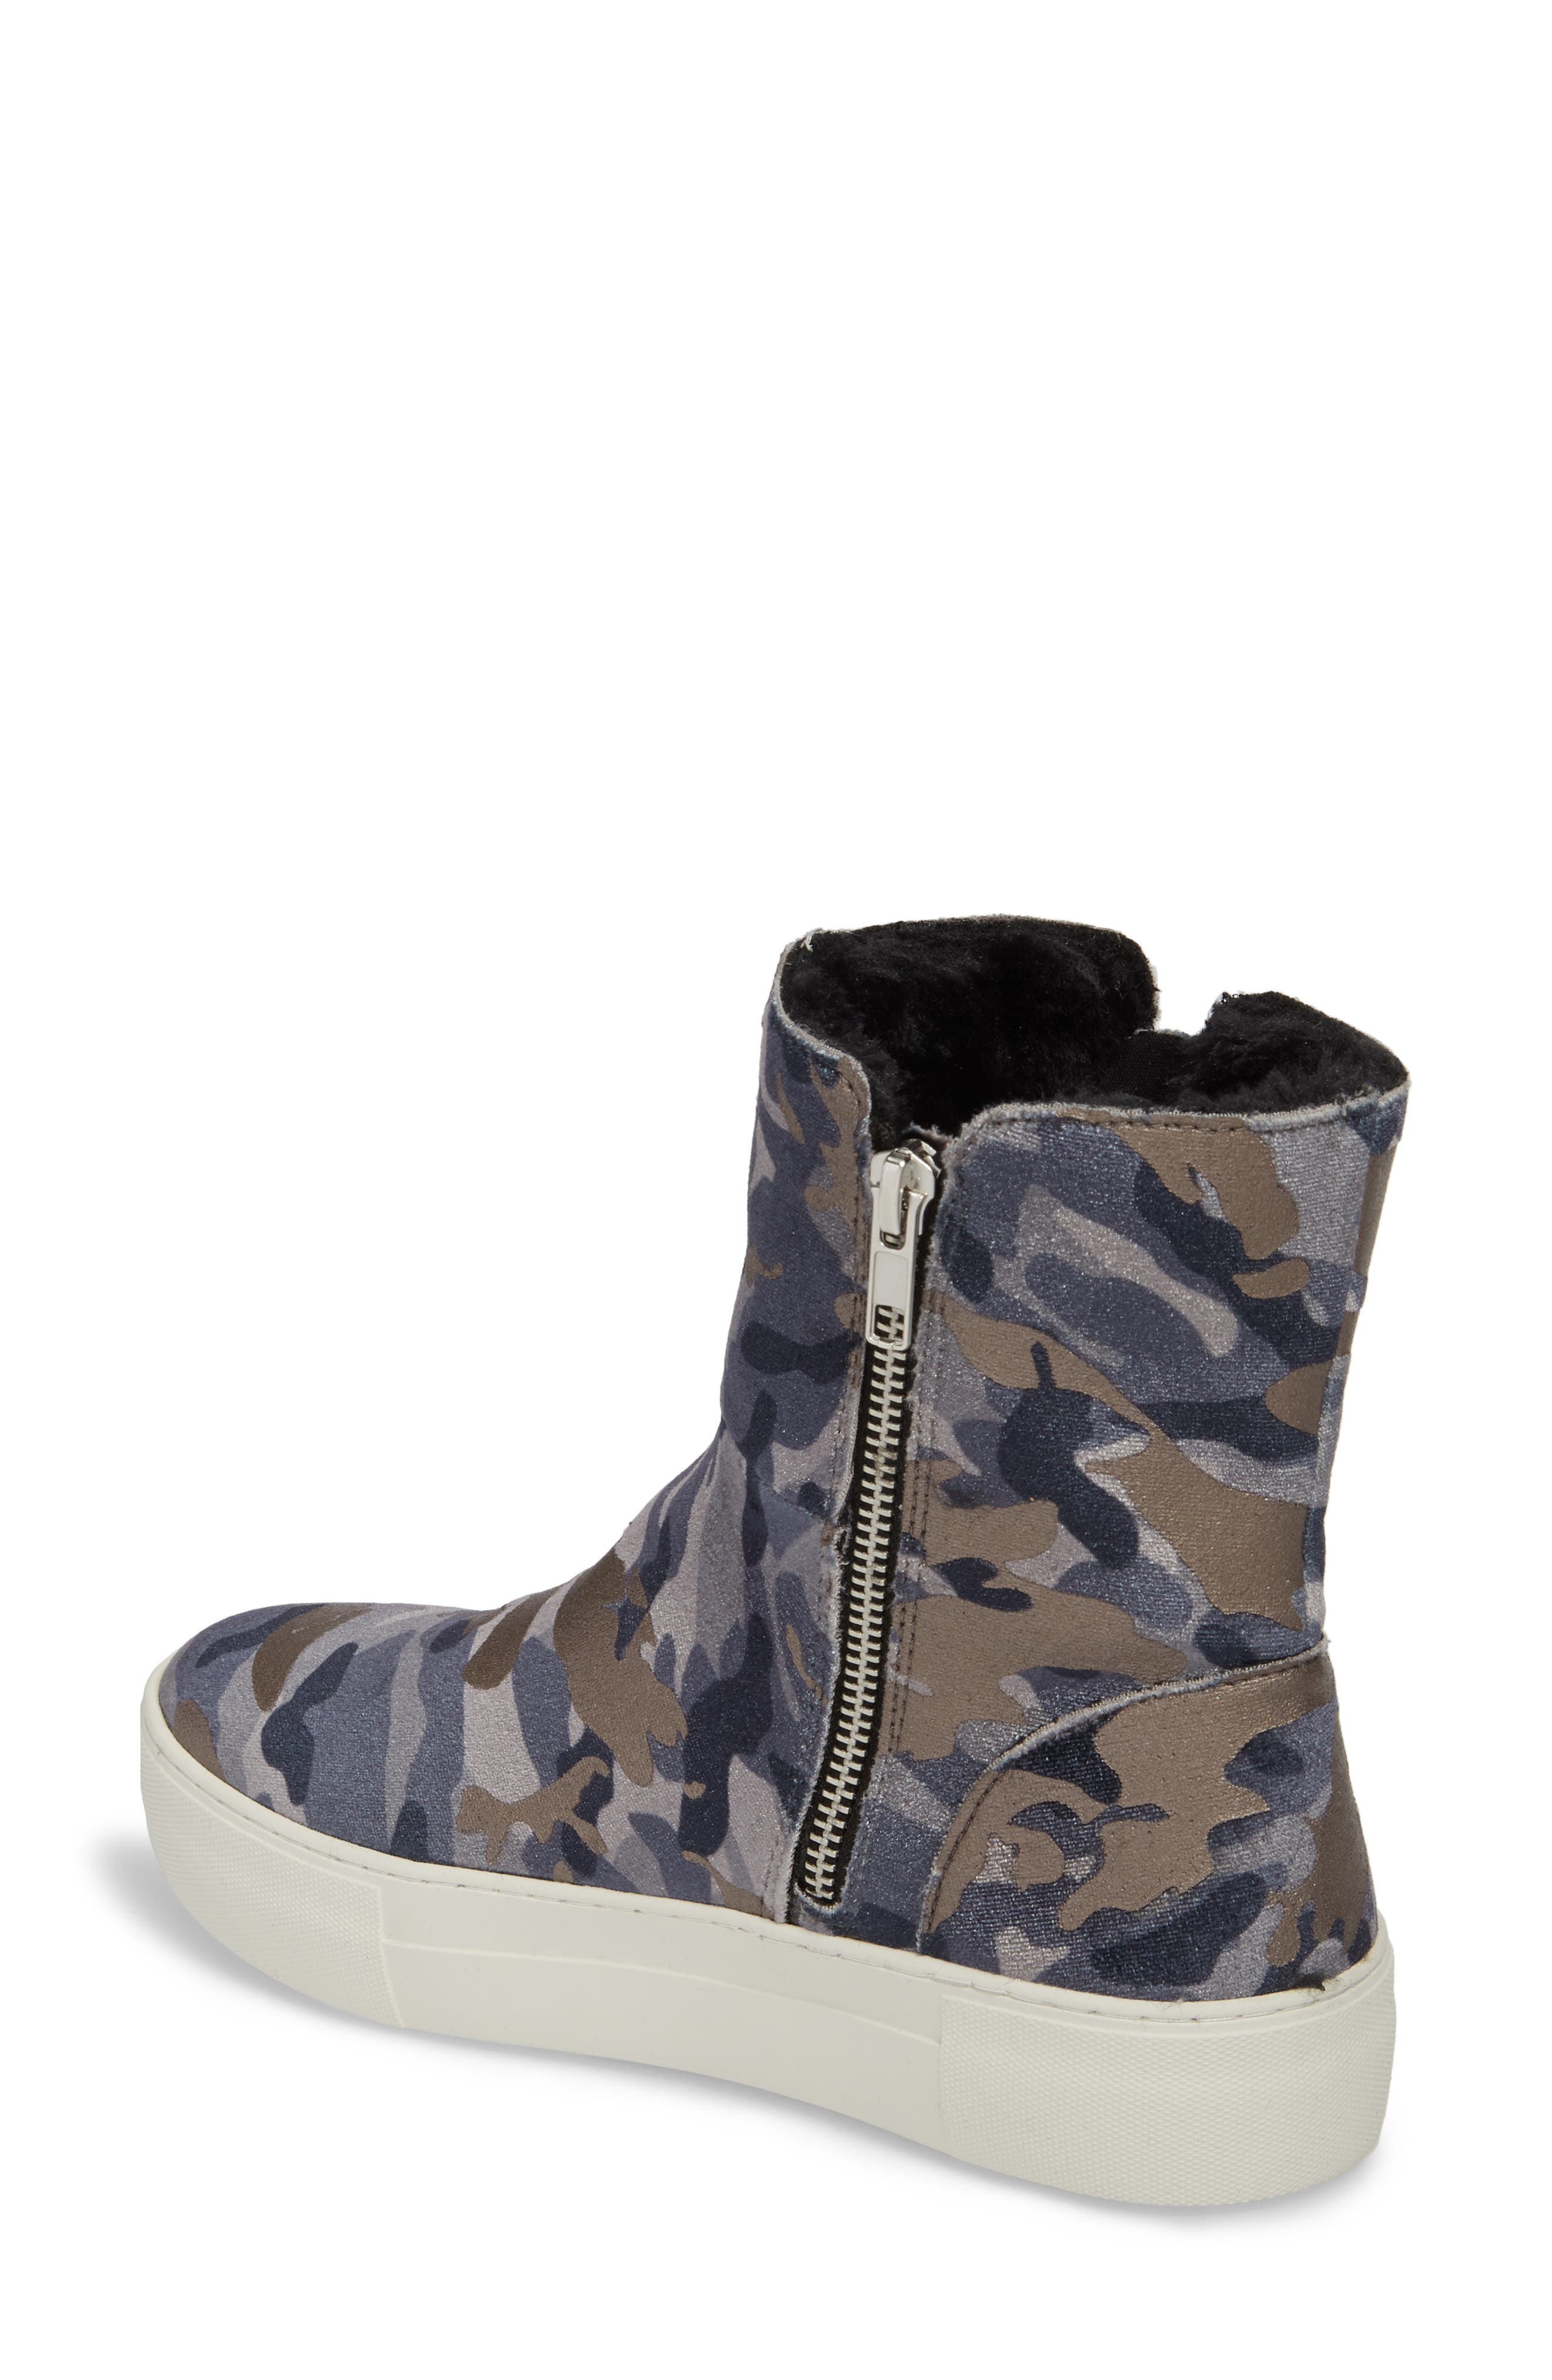 Garrson Sneaker Boot,                             Alternate thumbnail 2, color,                             Camouflage